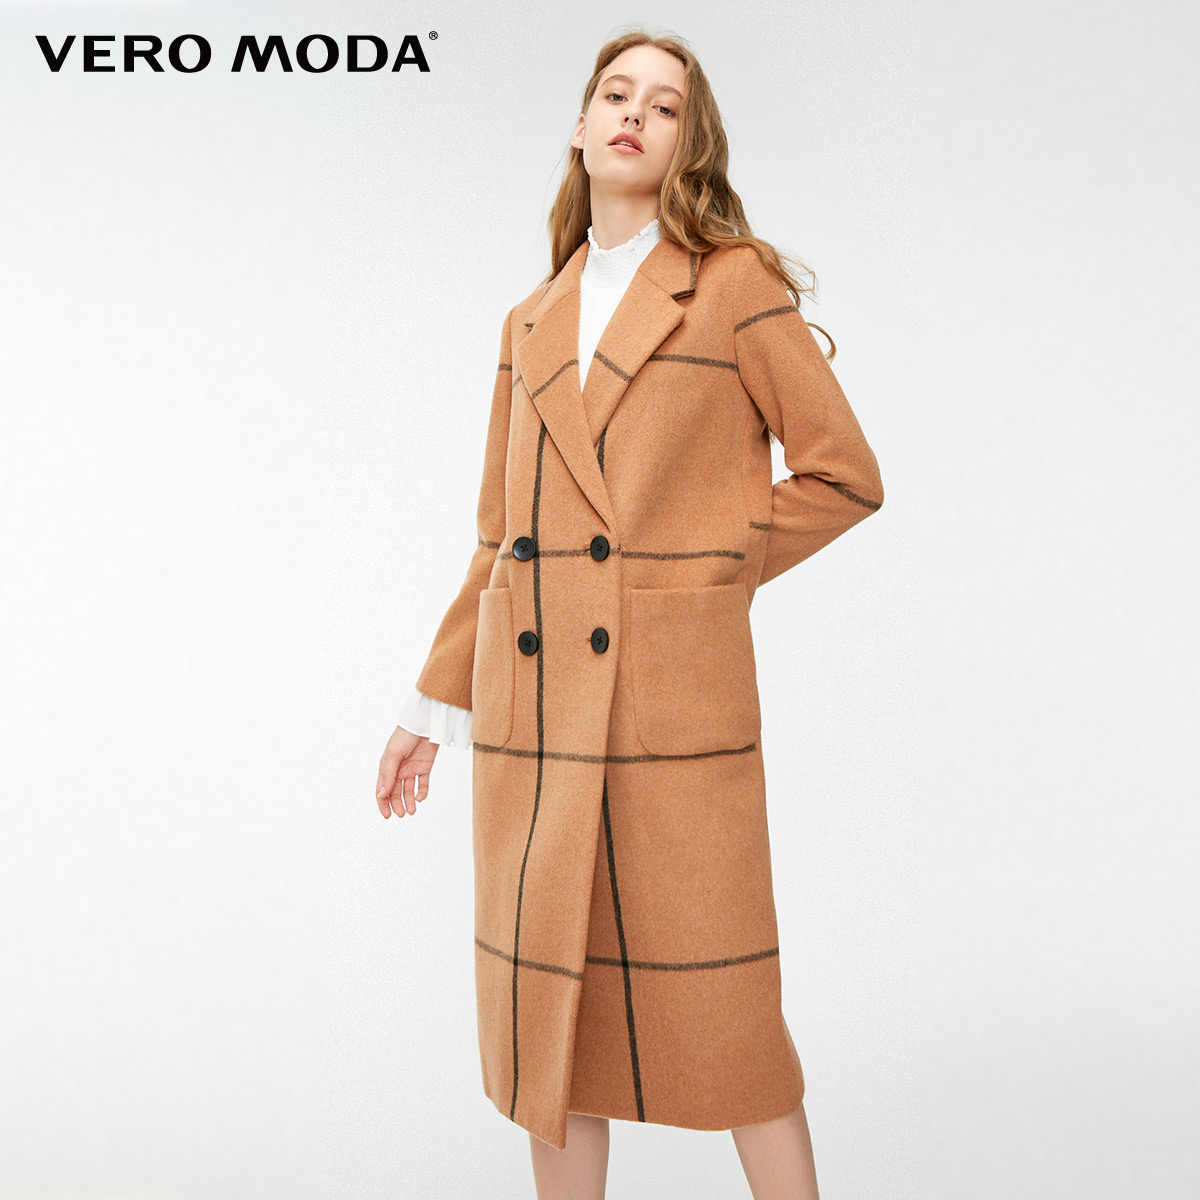 Vero Moda Women's Urban Plaid Straight Long Woolen Coat  | 318327514